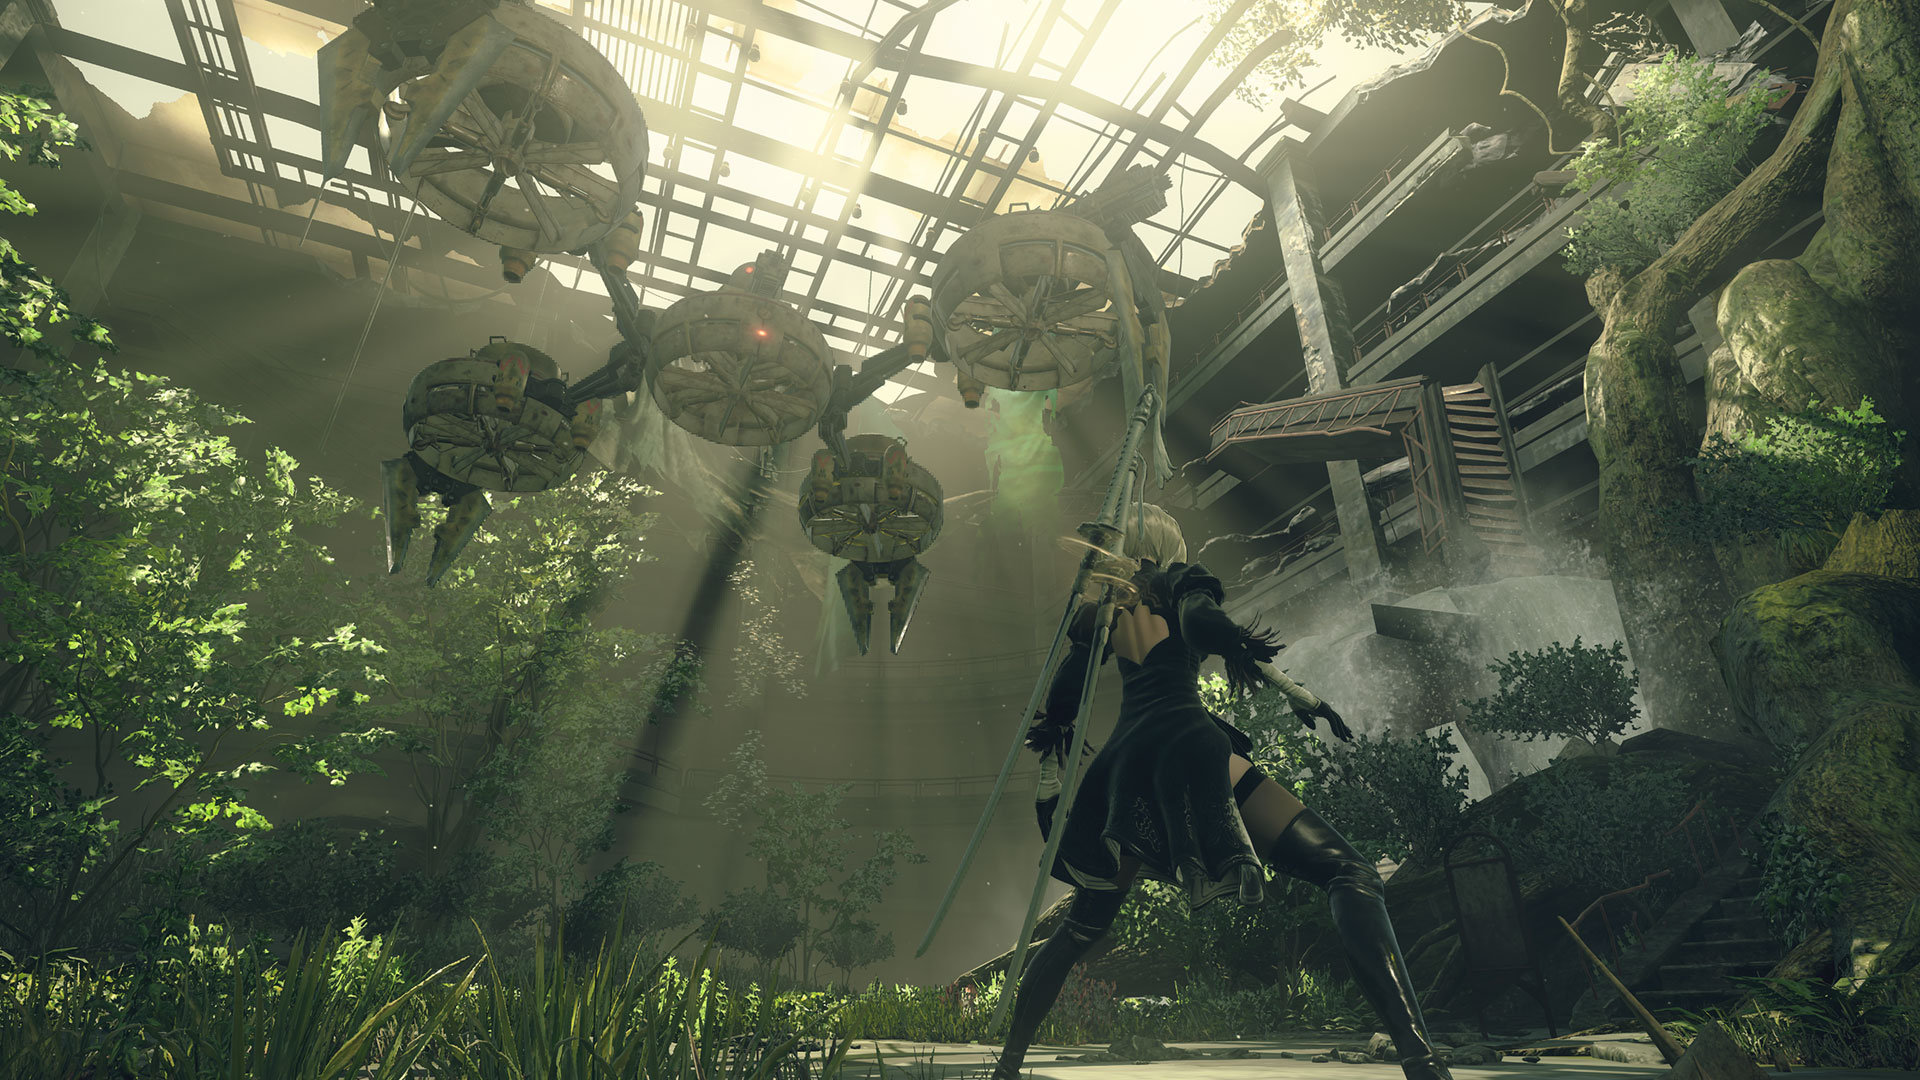 Nier Automata Xbox One Hdr Is Concluded As Fake Gameranx